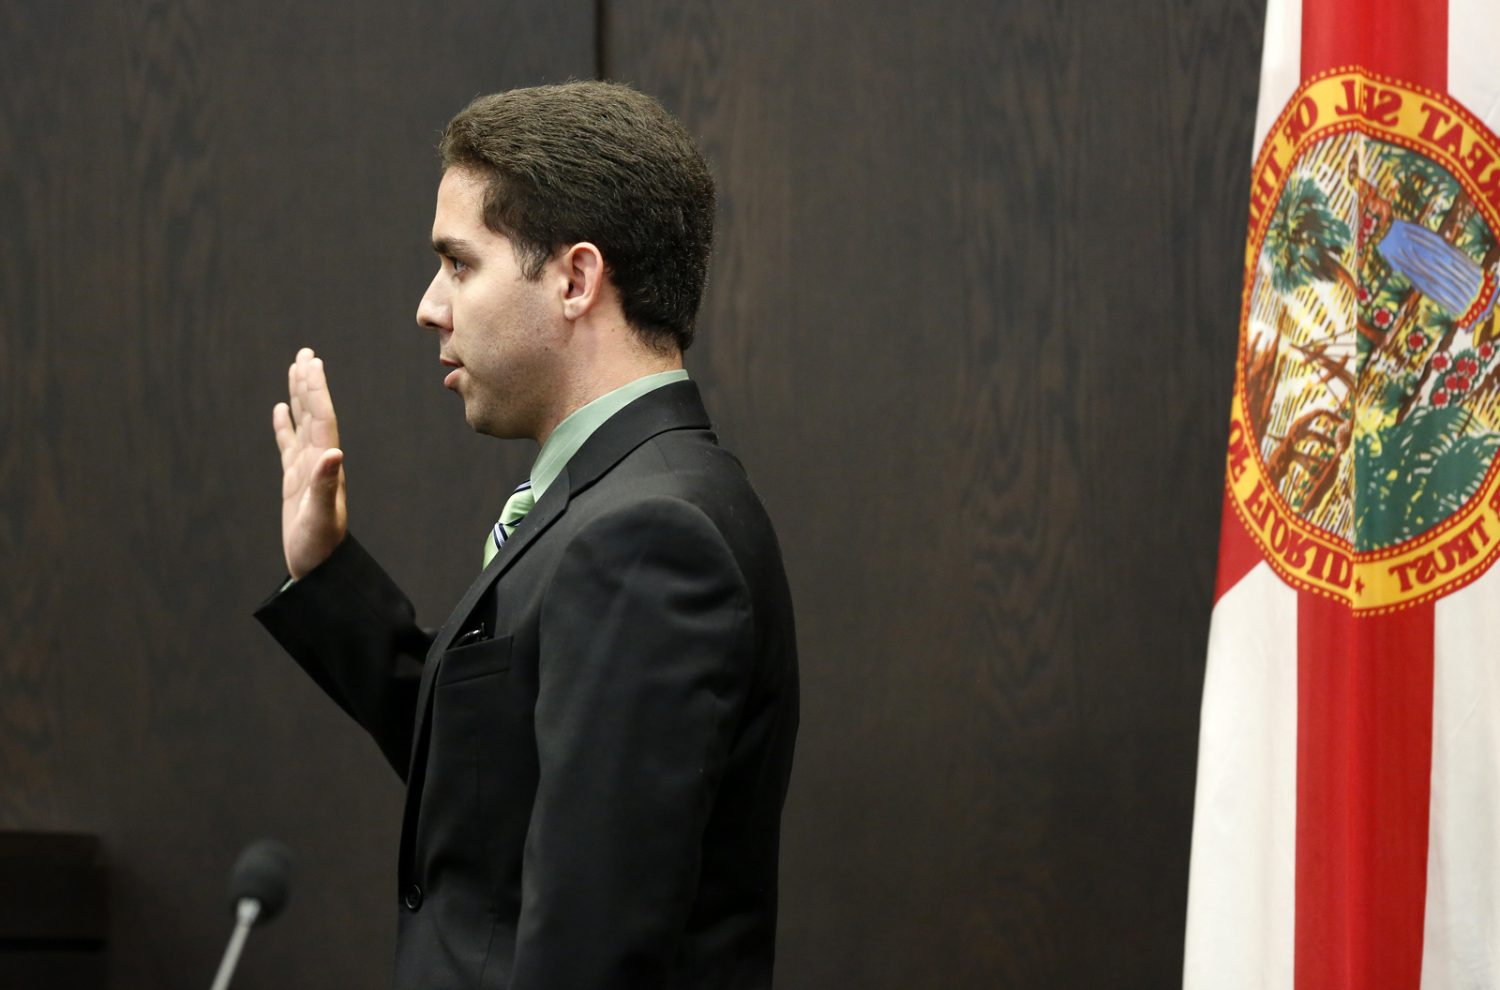 Roberto Finale, one of Pedro Bravo's two roommates, is sworn in during Bravo's murder trial in courtroom 1B of the Alachua County Criminal Justice Center Friday, August 8, 2014.  Bravo is accused of killing University of Florida student Christian Aguilar.  (Doug Finger/The Gainesville Sun/Pool)